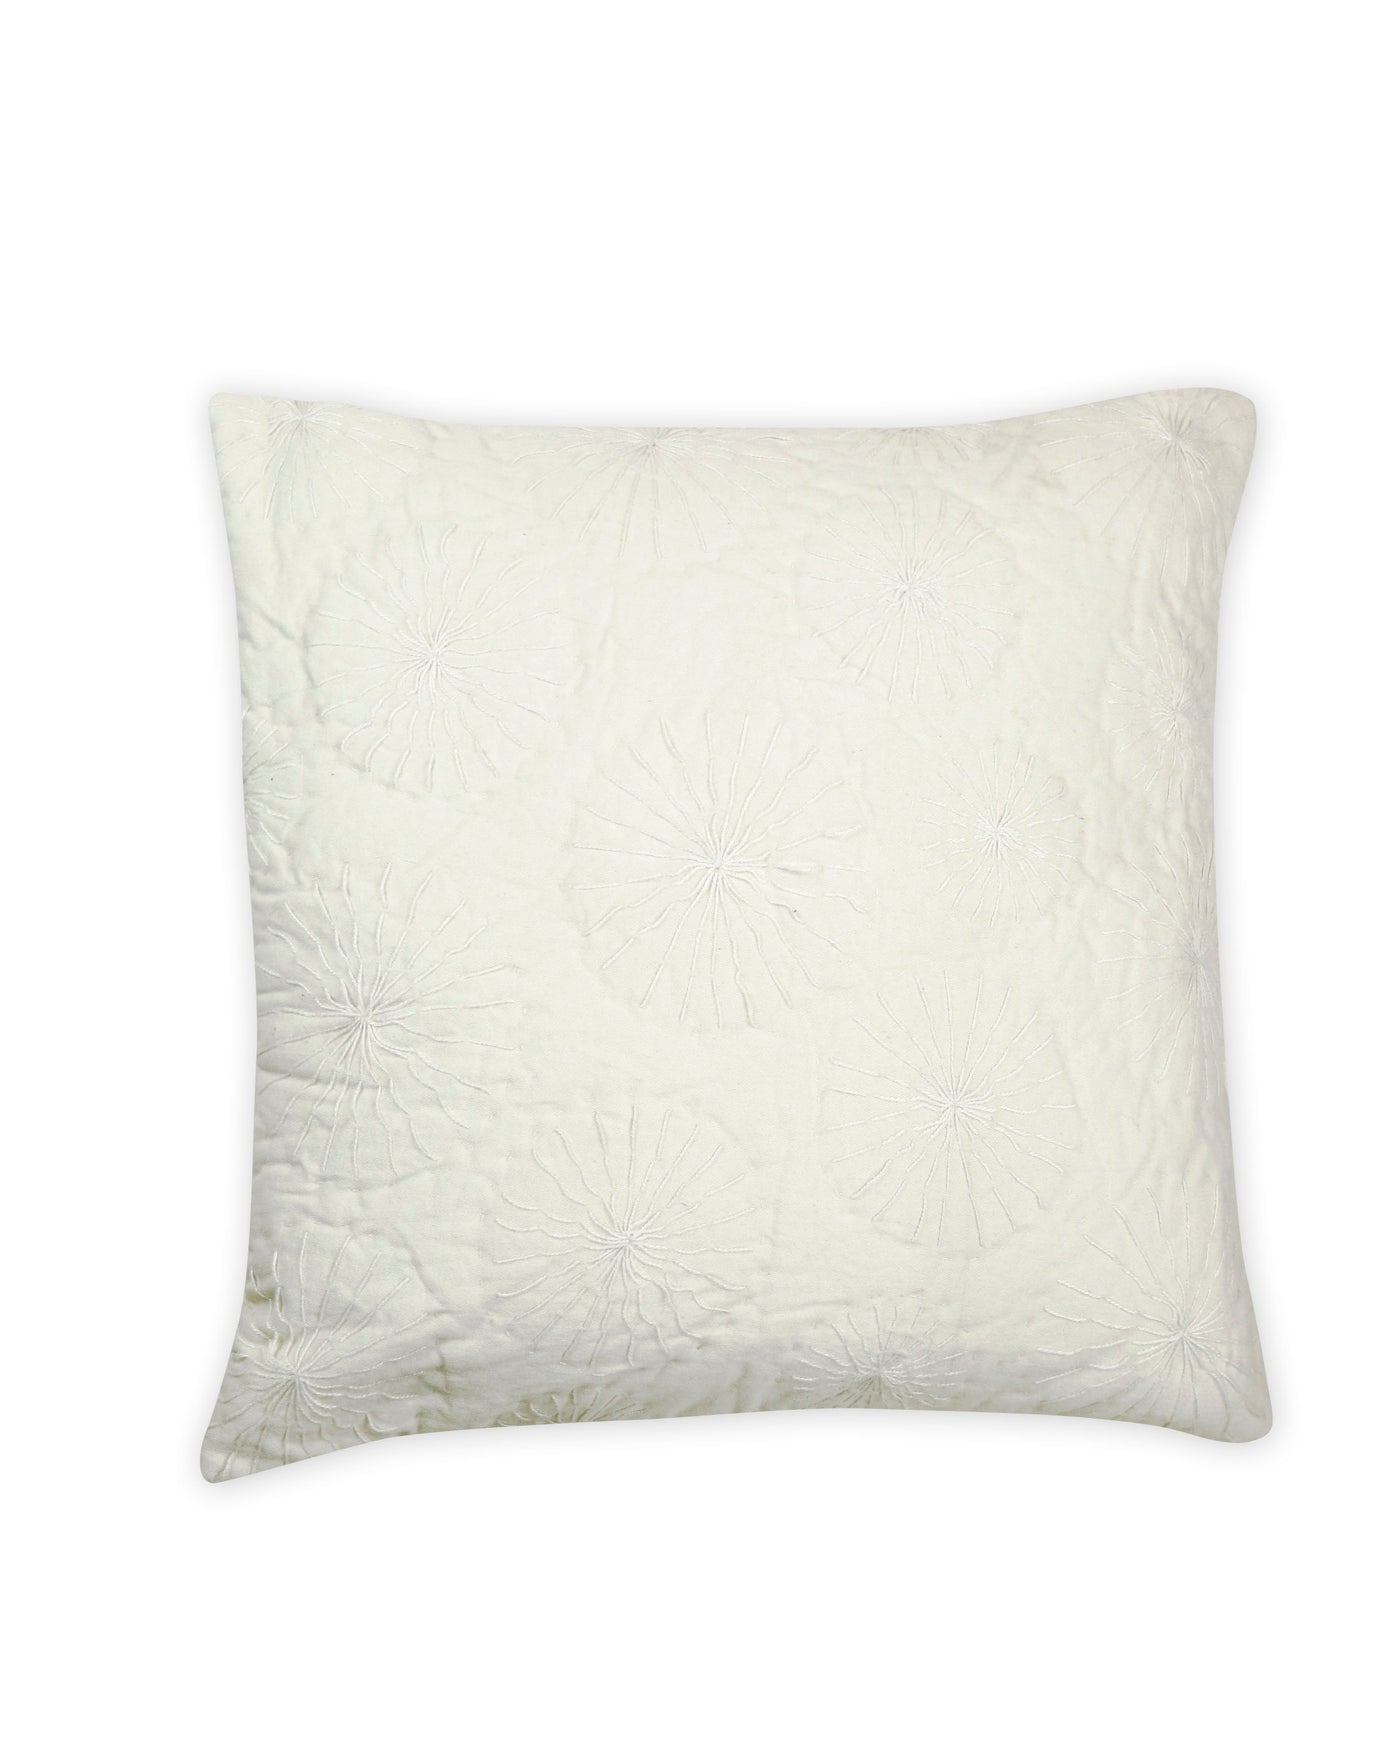 Cream Cotton Embroidered Cushion